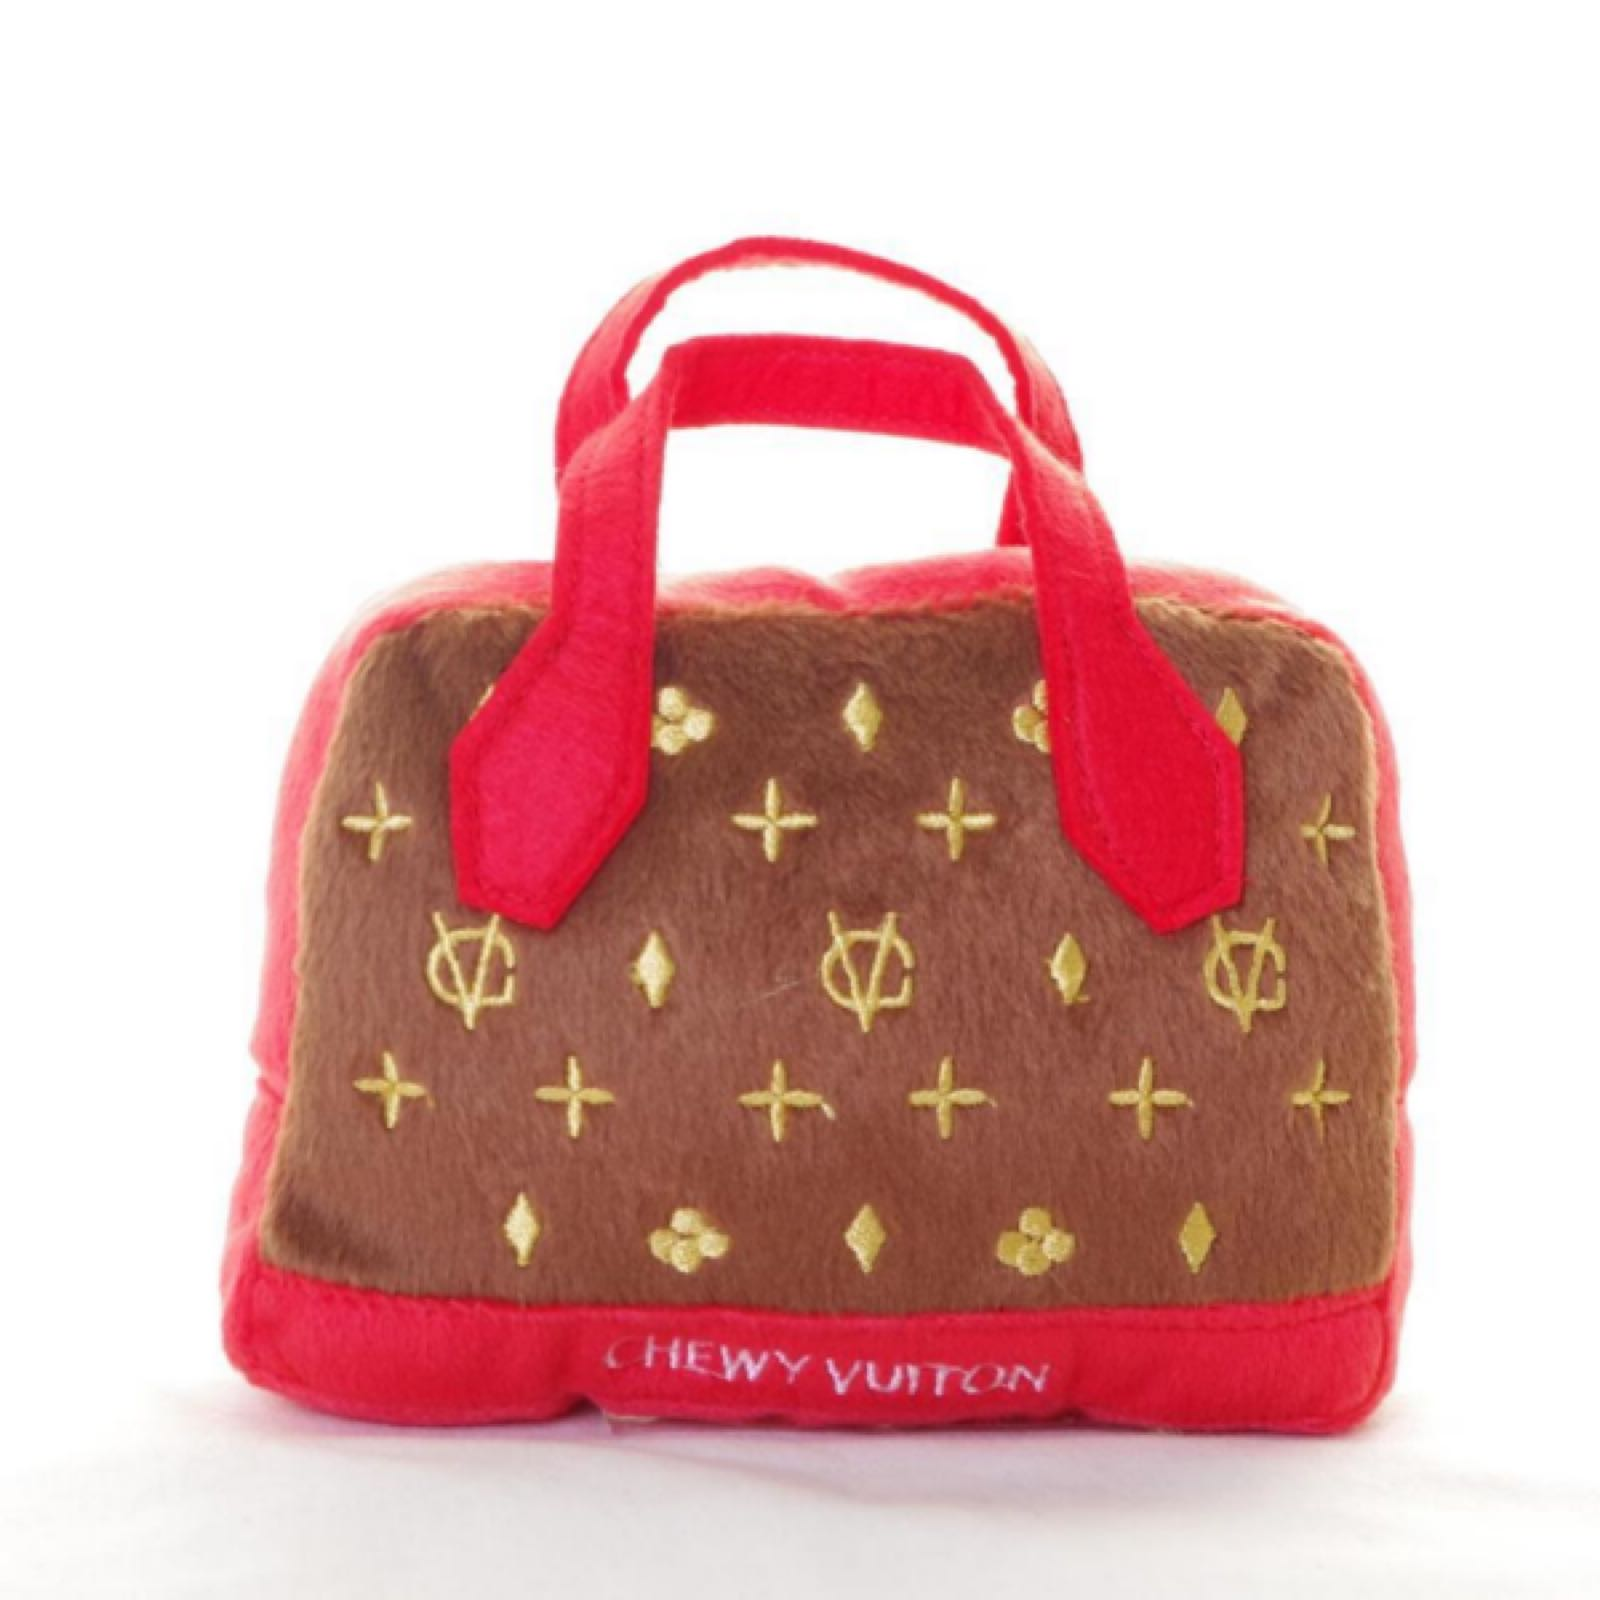 Chewy Vuiton bag red